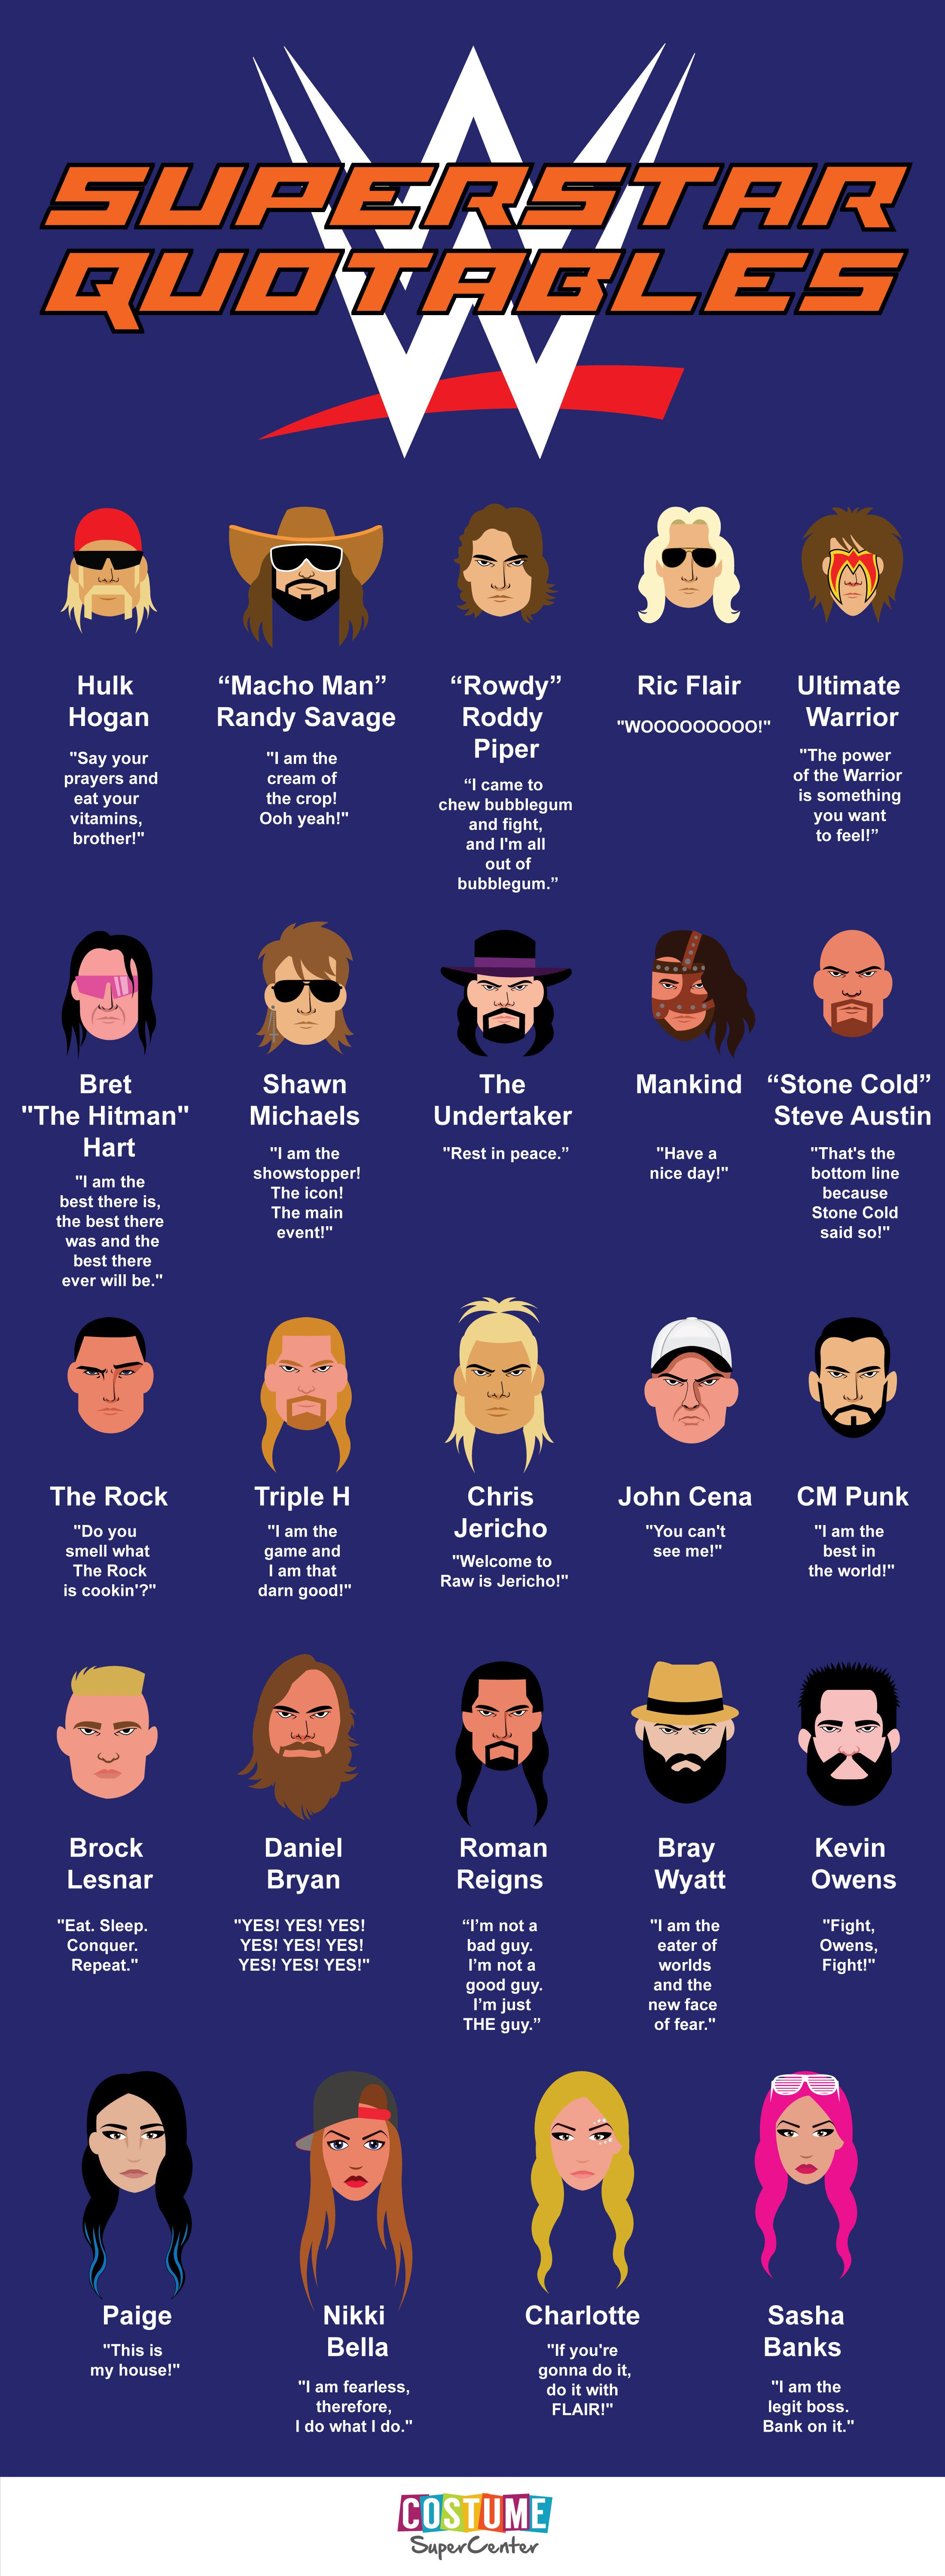 Superstar Quotables #Infographic